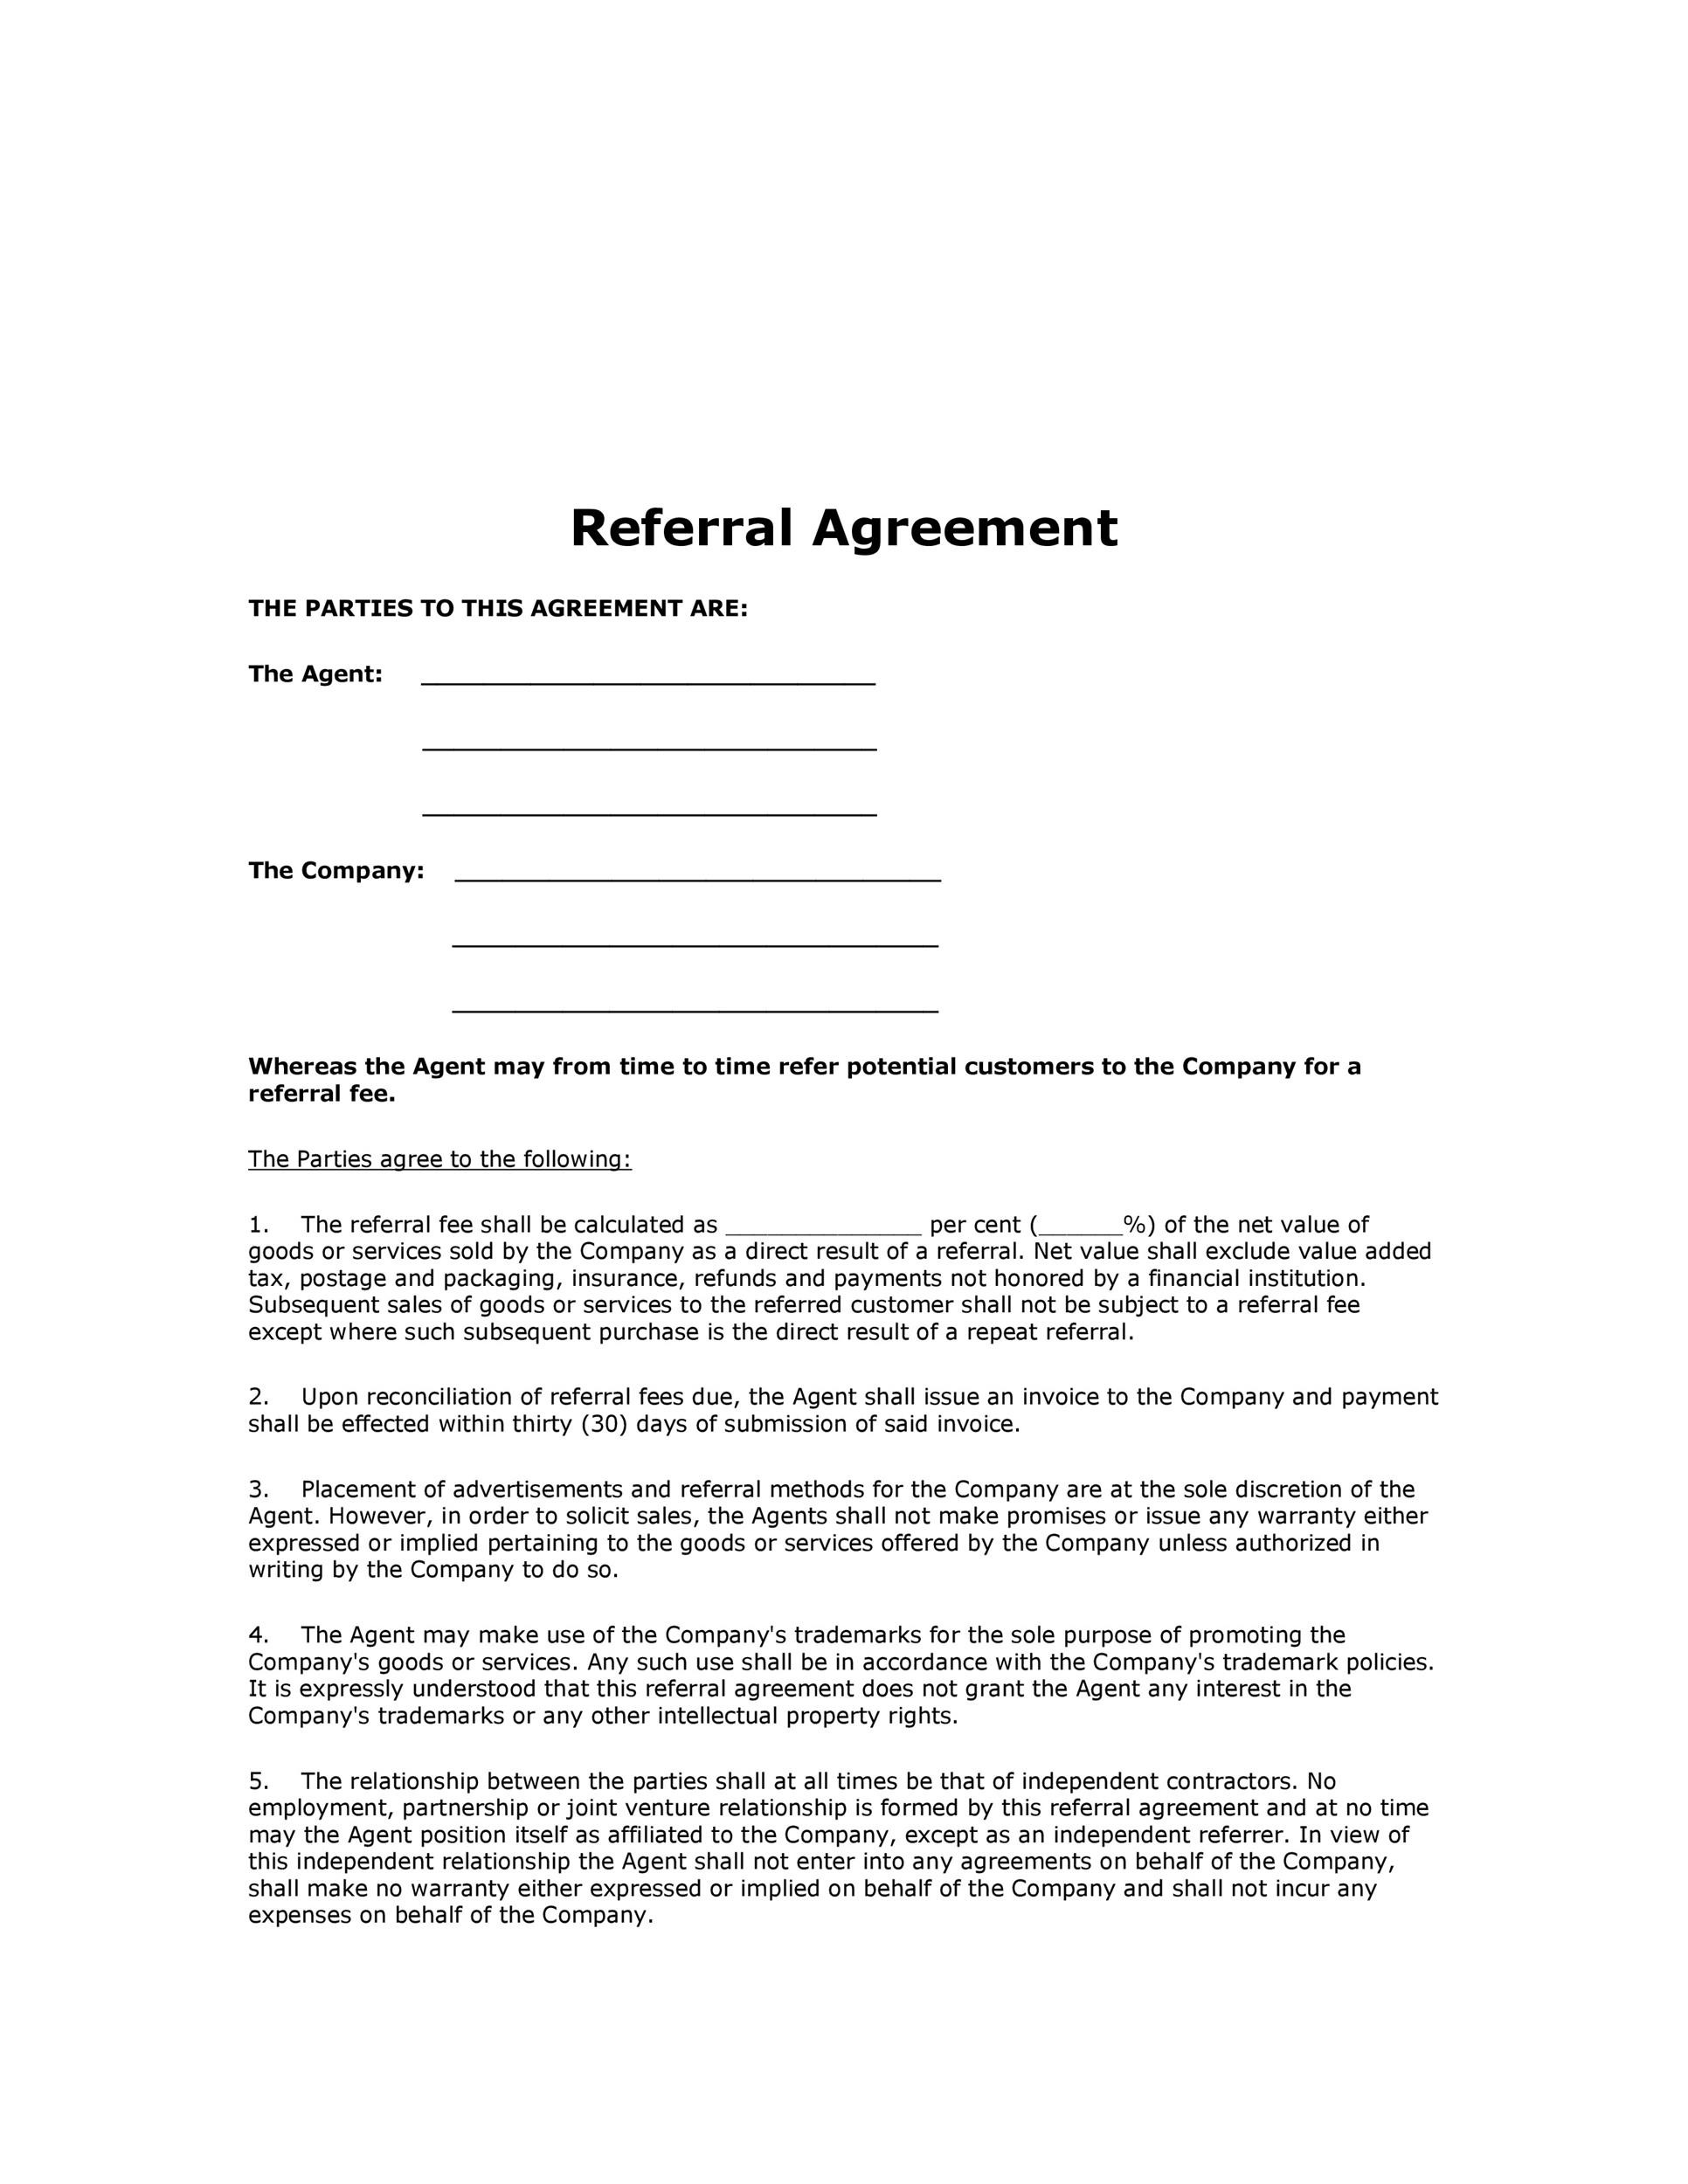 Free referral agreement template 16